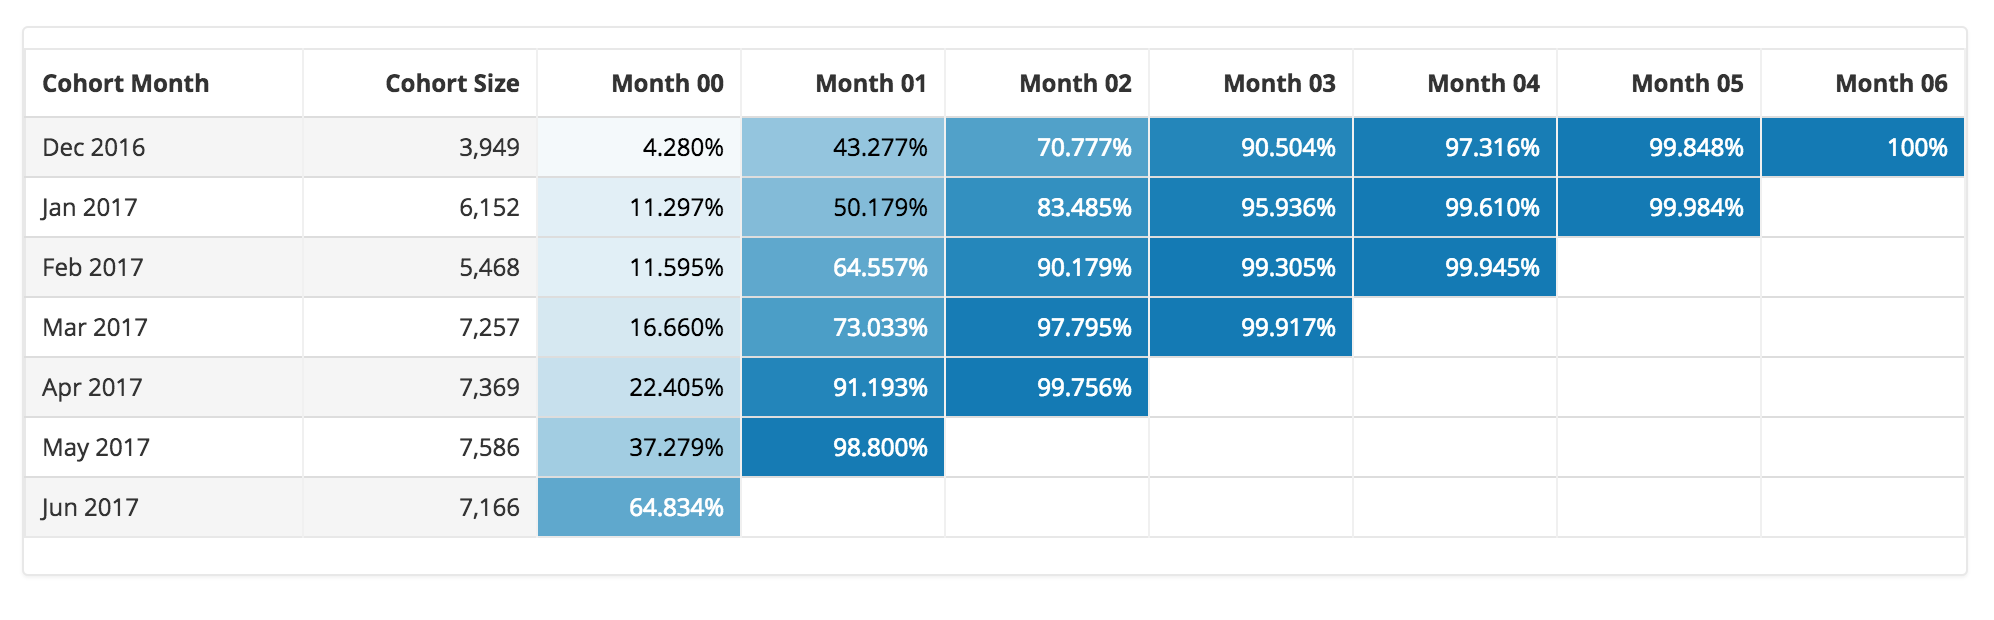 Cohort Retention Analysis Chart with SQL